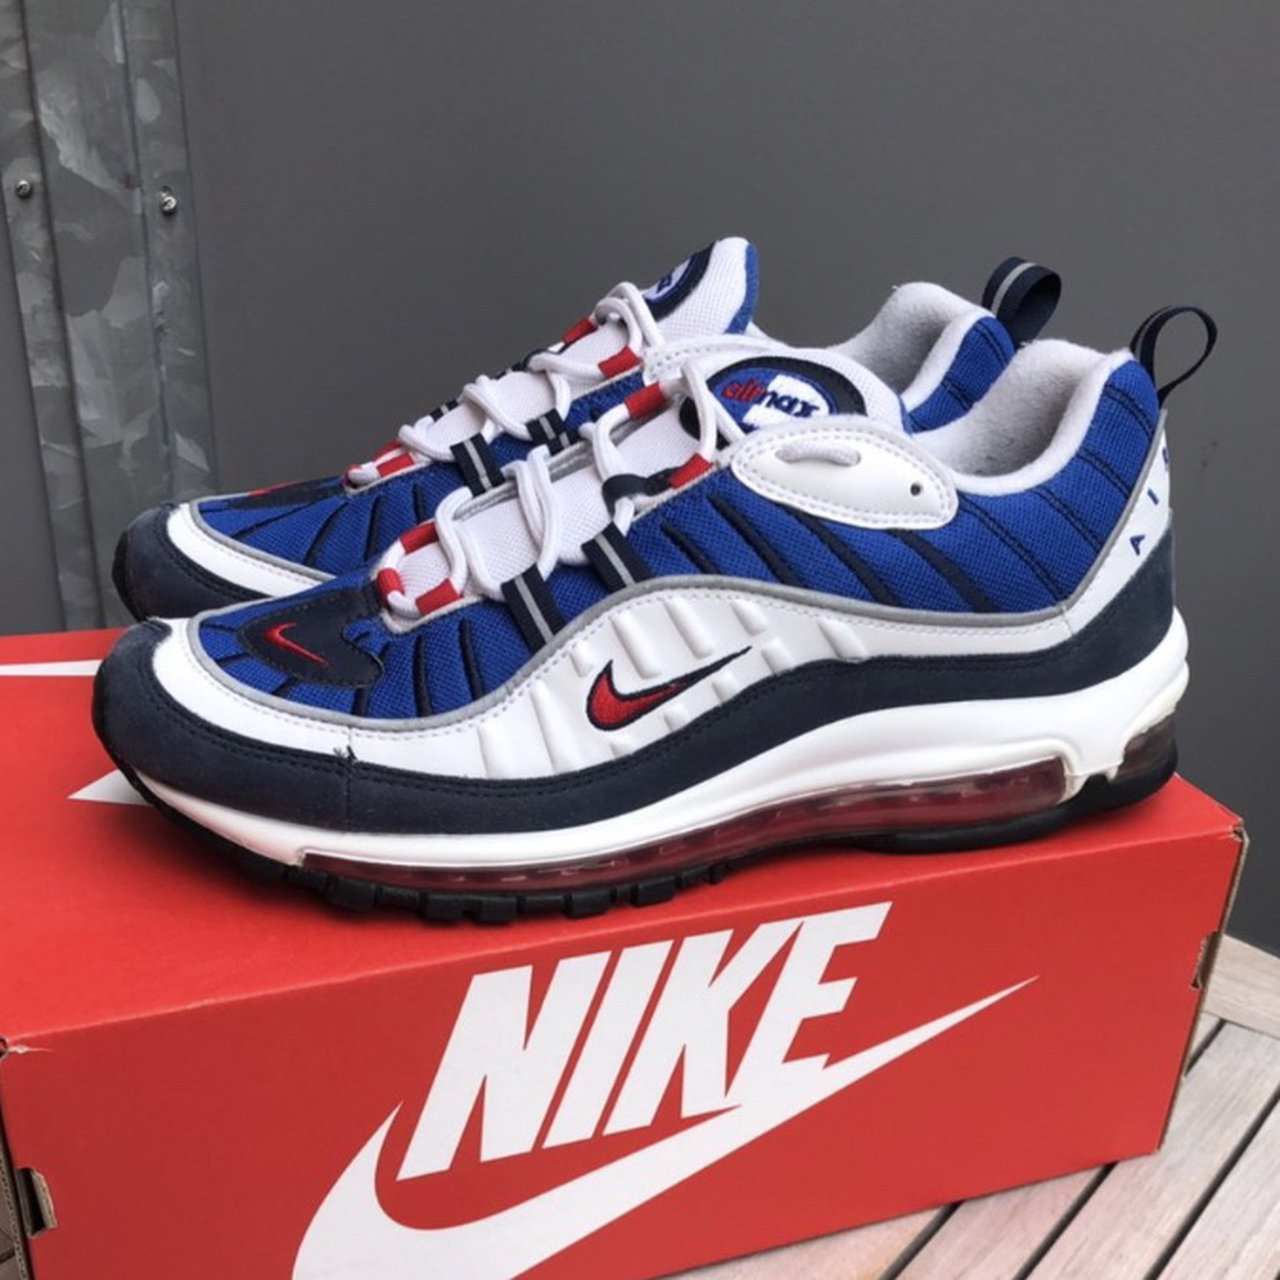 Nike Air Max 98 Gundam With Original Box Size Us10 Depop